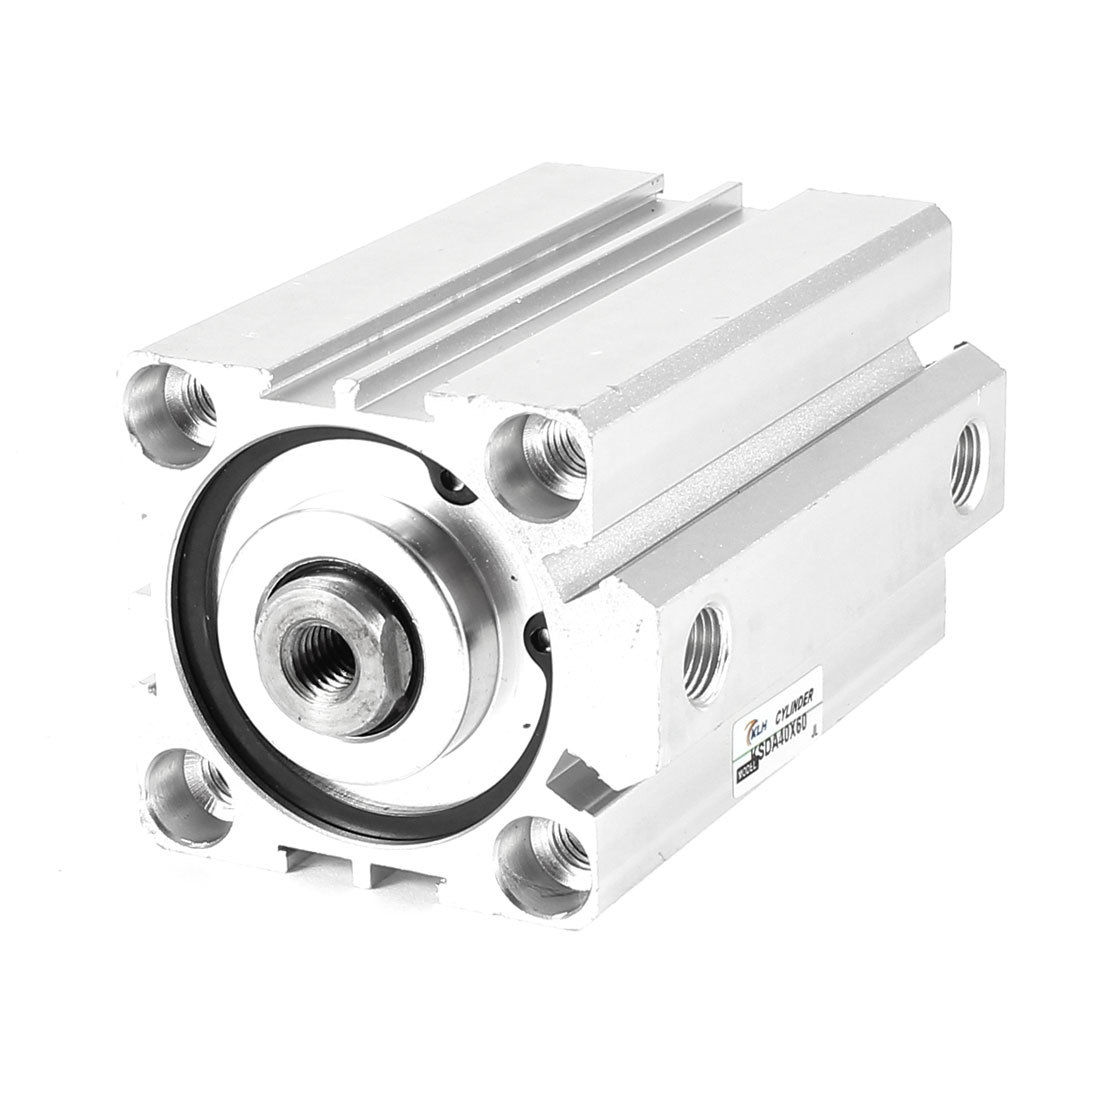 1 Pcs 63mm Bore 45mm Stroke Stainless steel Pneumatic Air Cylinder SDA63-45 10mm bore 45mm stroke 1rod pneumatic cylinder w orange red air compressor tube